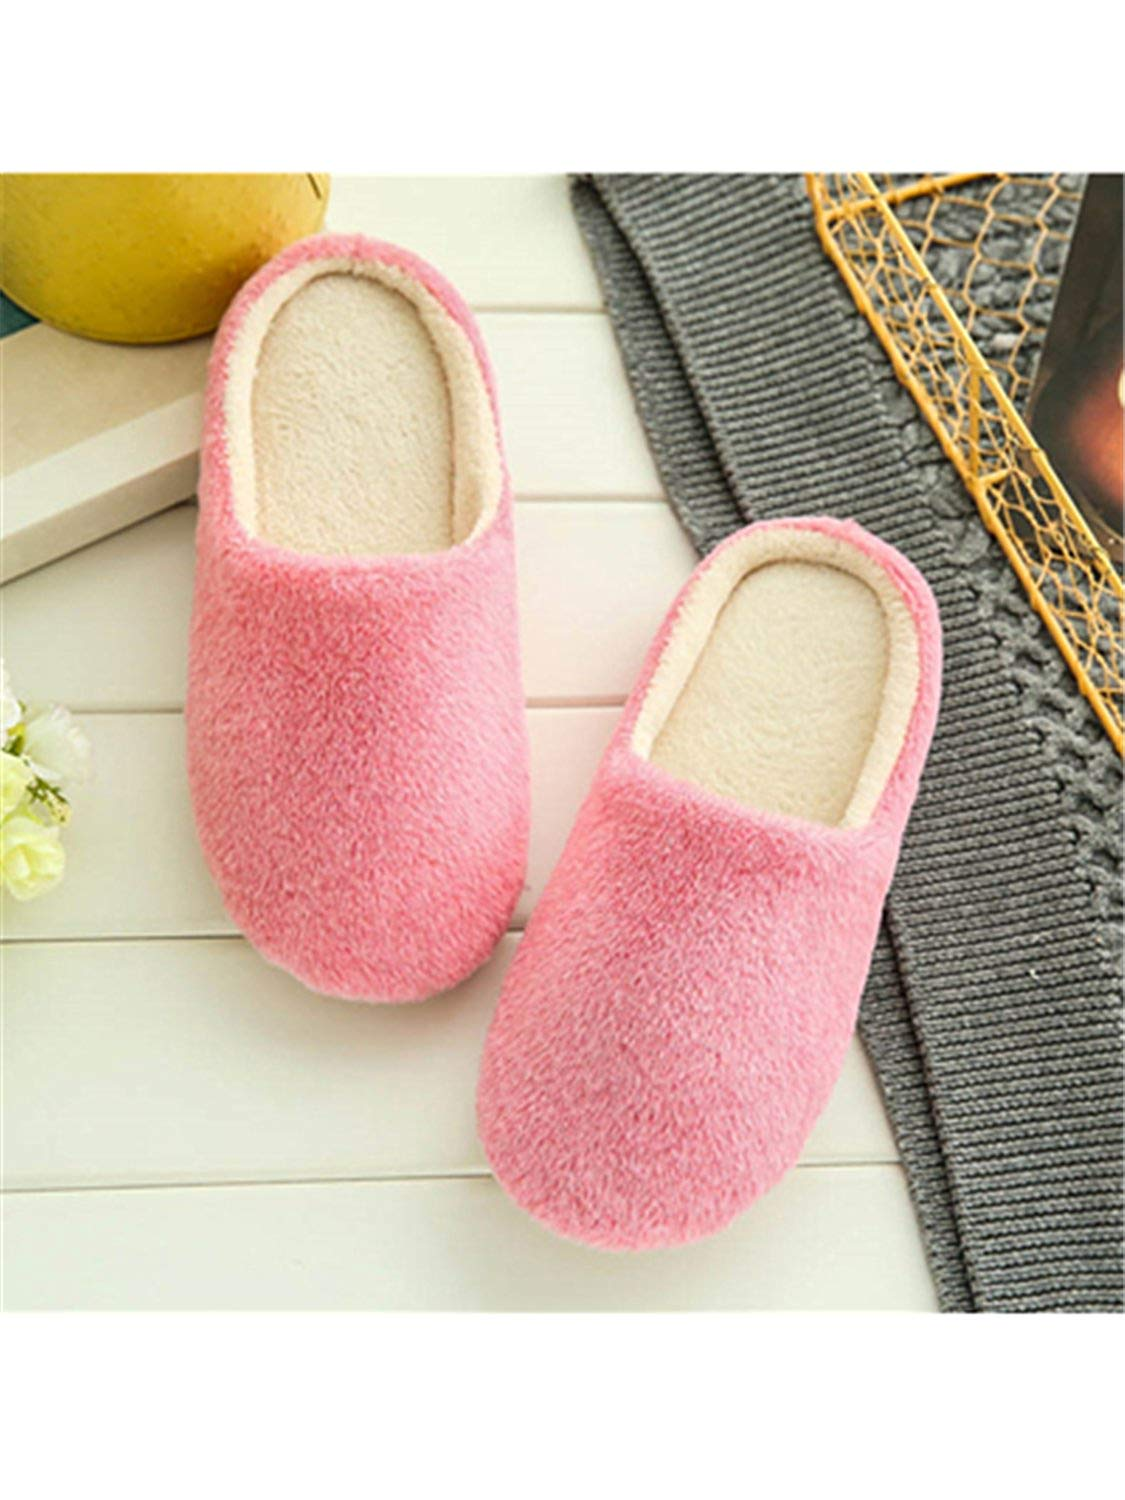 Jwhui Indoor House Slipper Soft Plush Cotton Cute Slippers Shoes Non-Slip Floor Home Furry Slippers Women Shoes for Bedroom